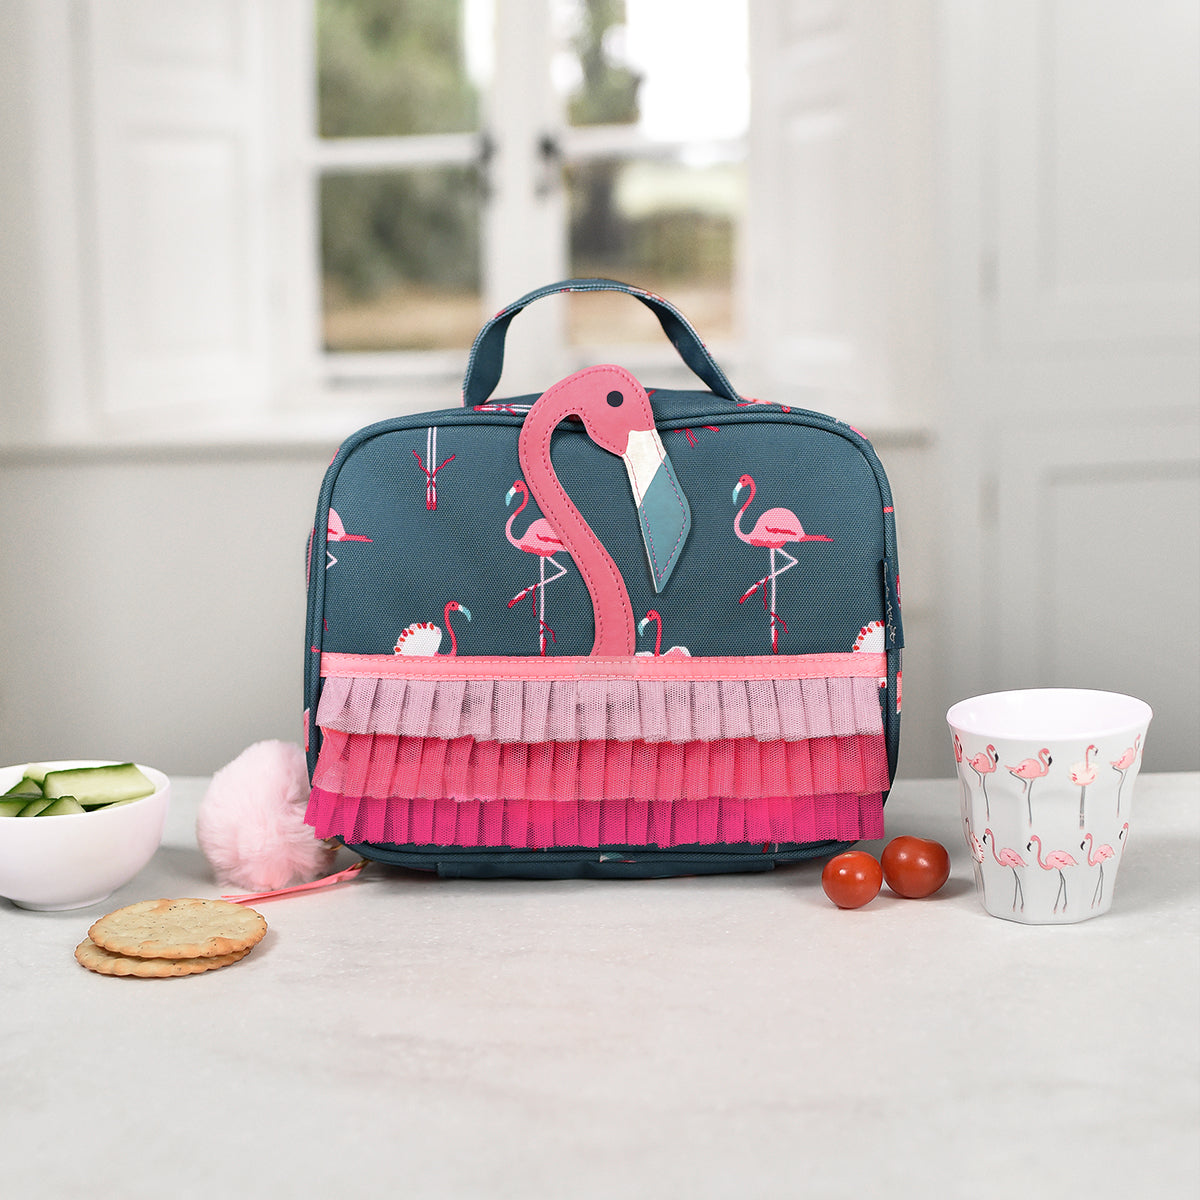 Flamingos lunch bag by Sophie Allport